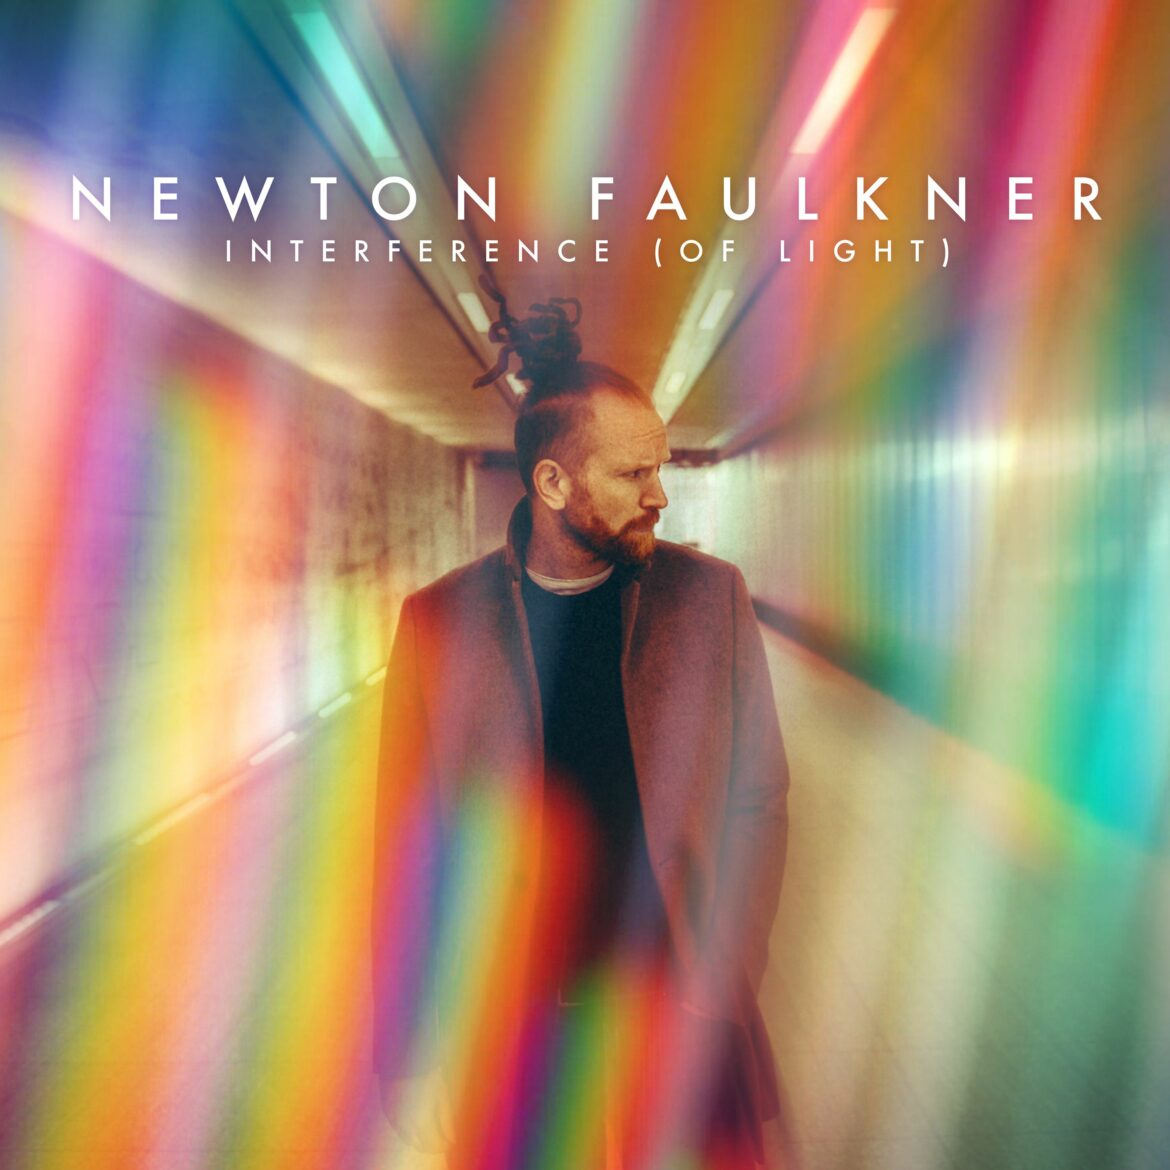 NEWS: Newton Faulkner returns with new album and tour dates